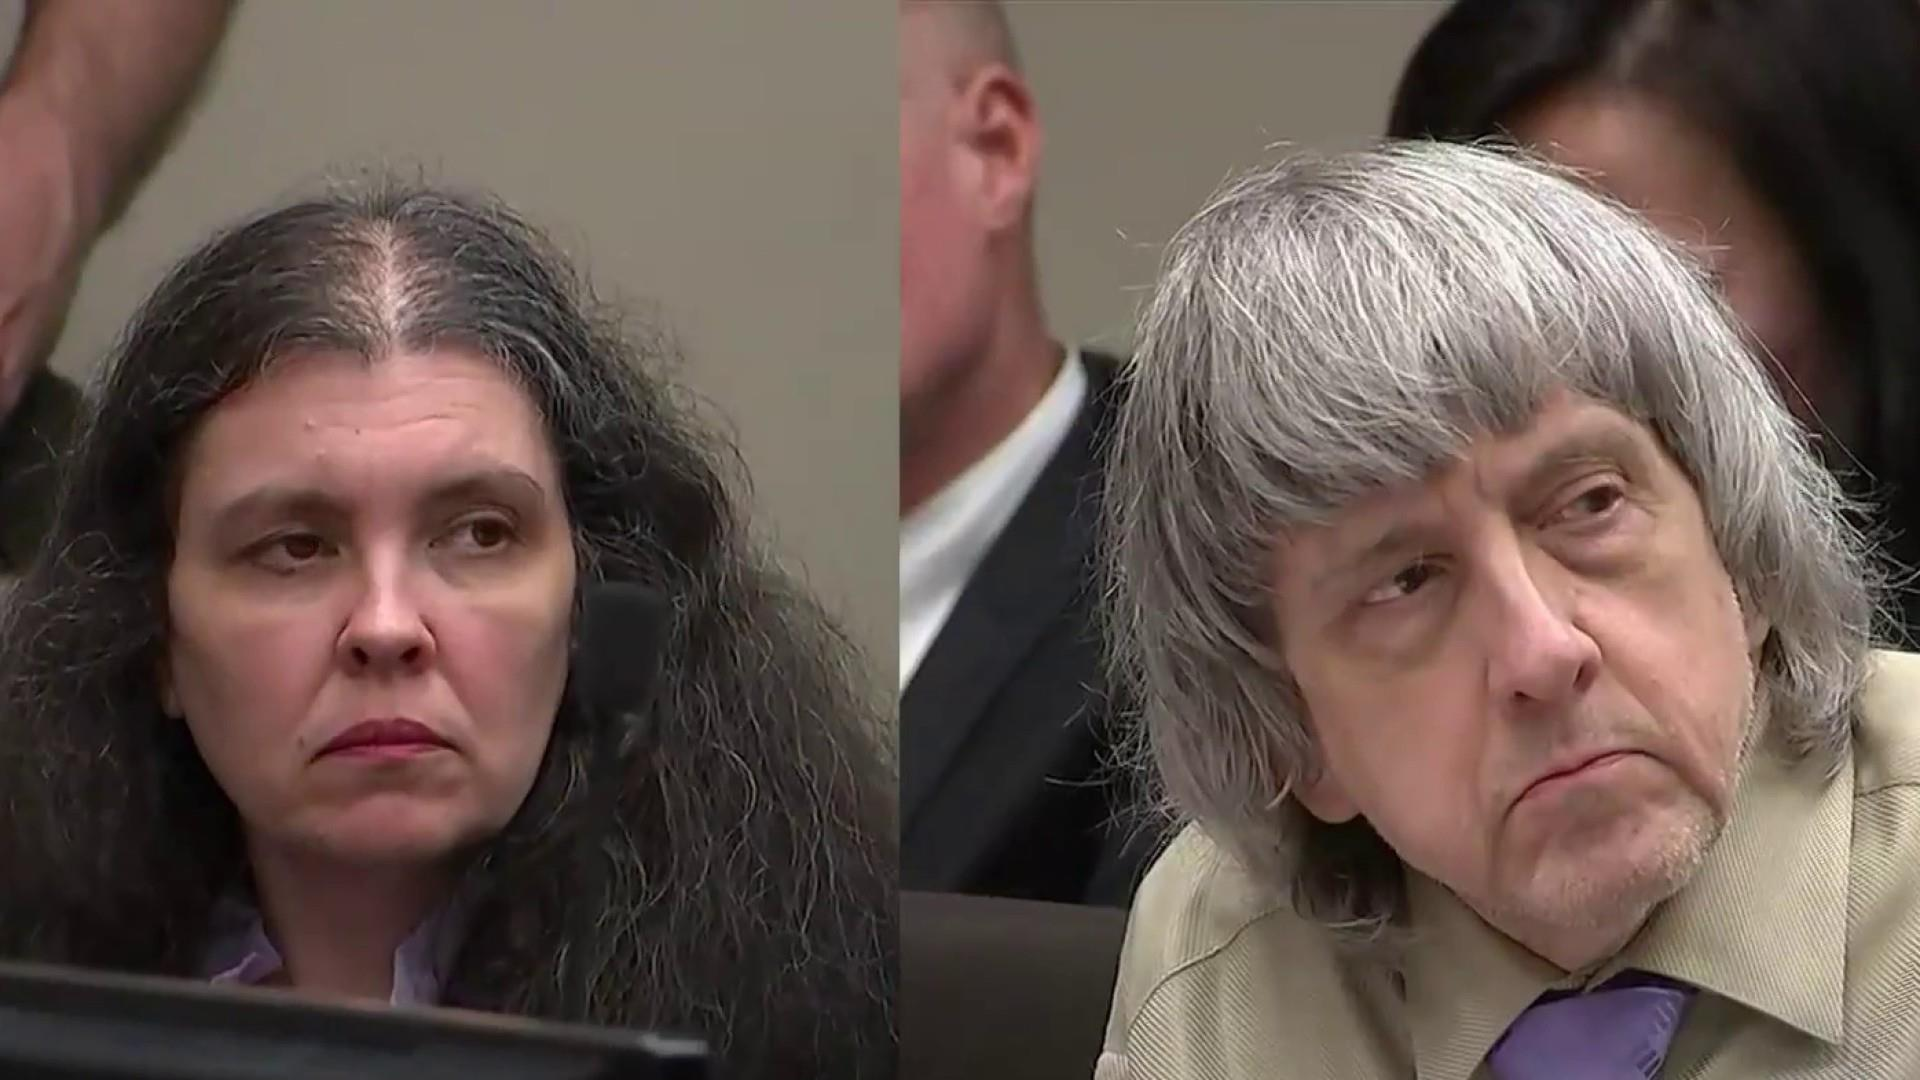 House of horrors victims speak out as parents sentenced to life in prison